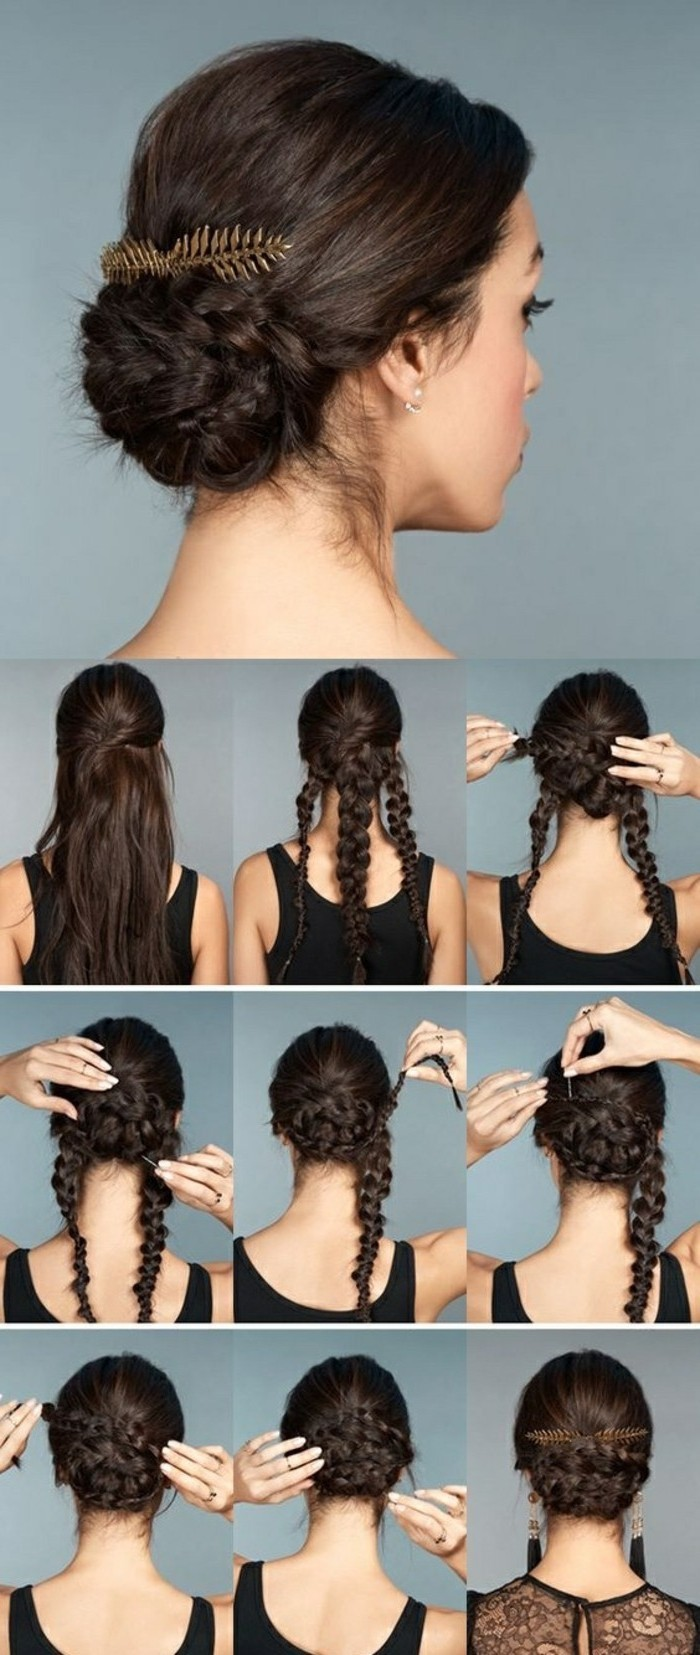 black hair, in a low updo, braided bun, updos for medium hair, golden hair accessory, step by step, diy tutorial